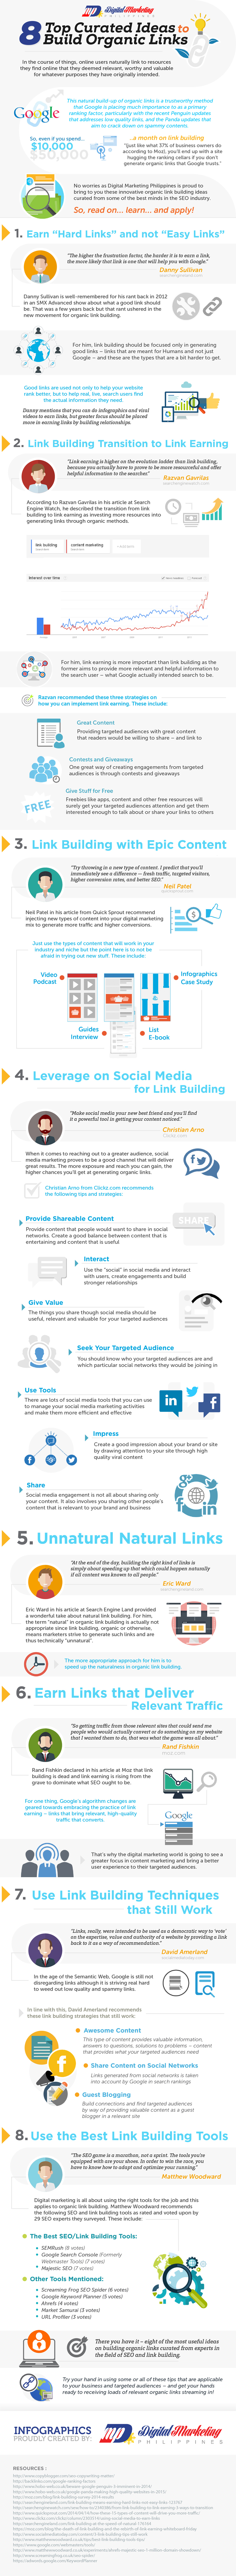 8 Top Curated Ideas to Build Organic Links (Infographic) - An Infographic from Digital Marketing Philippines